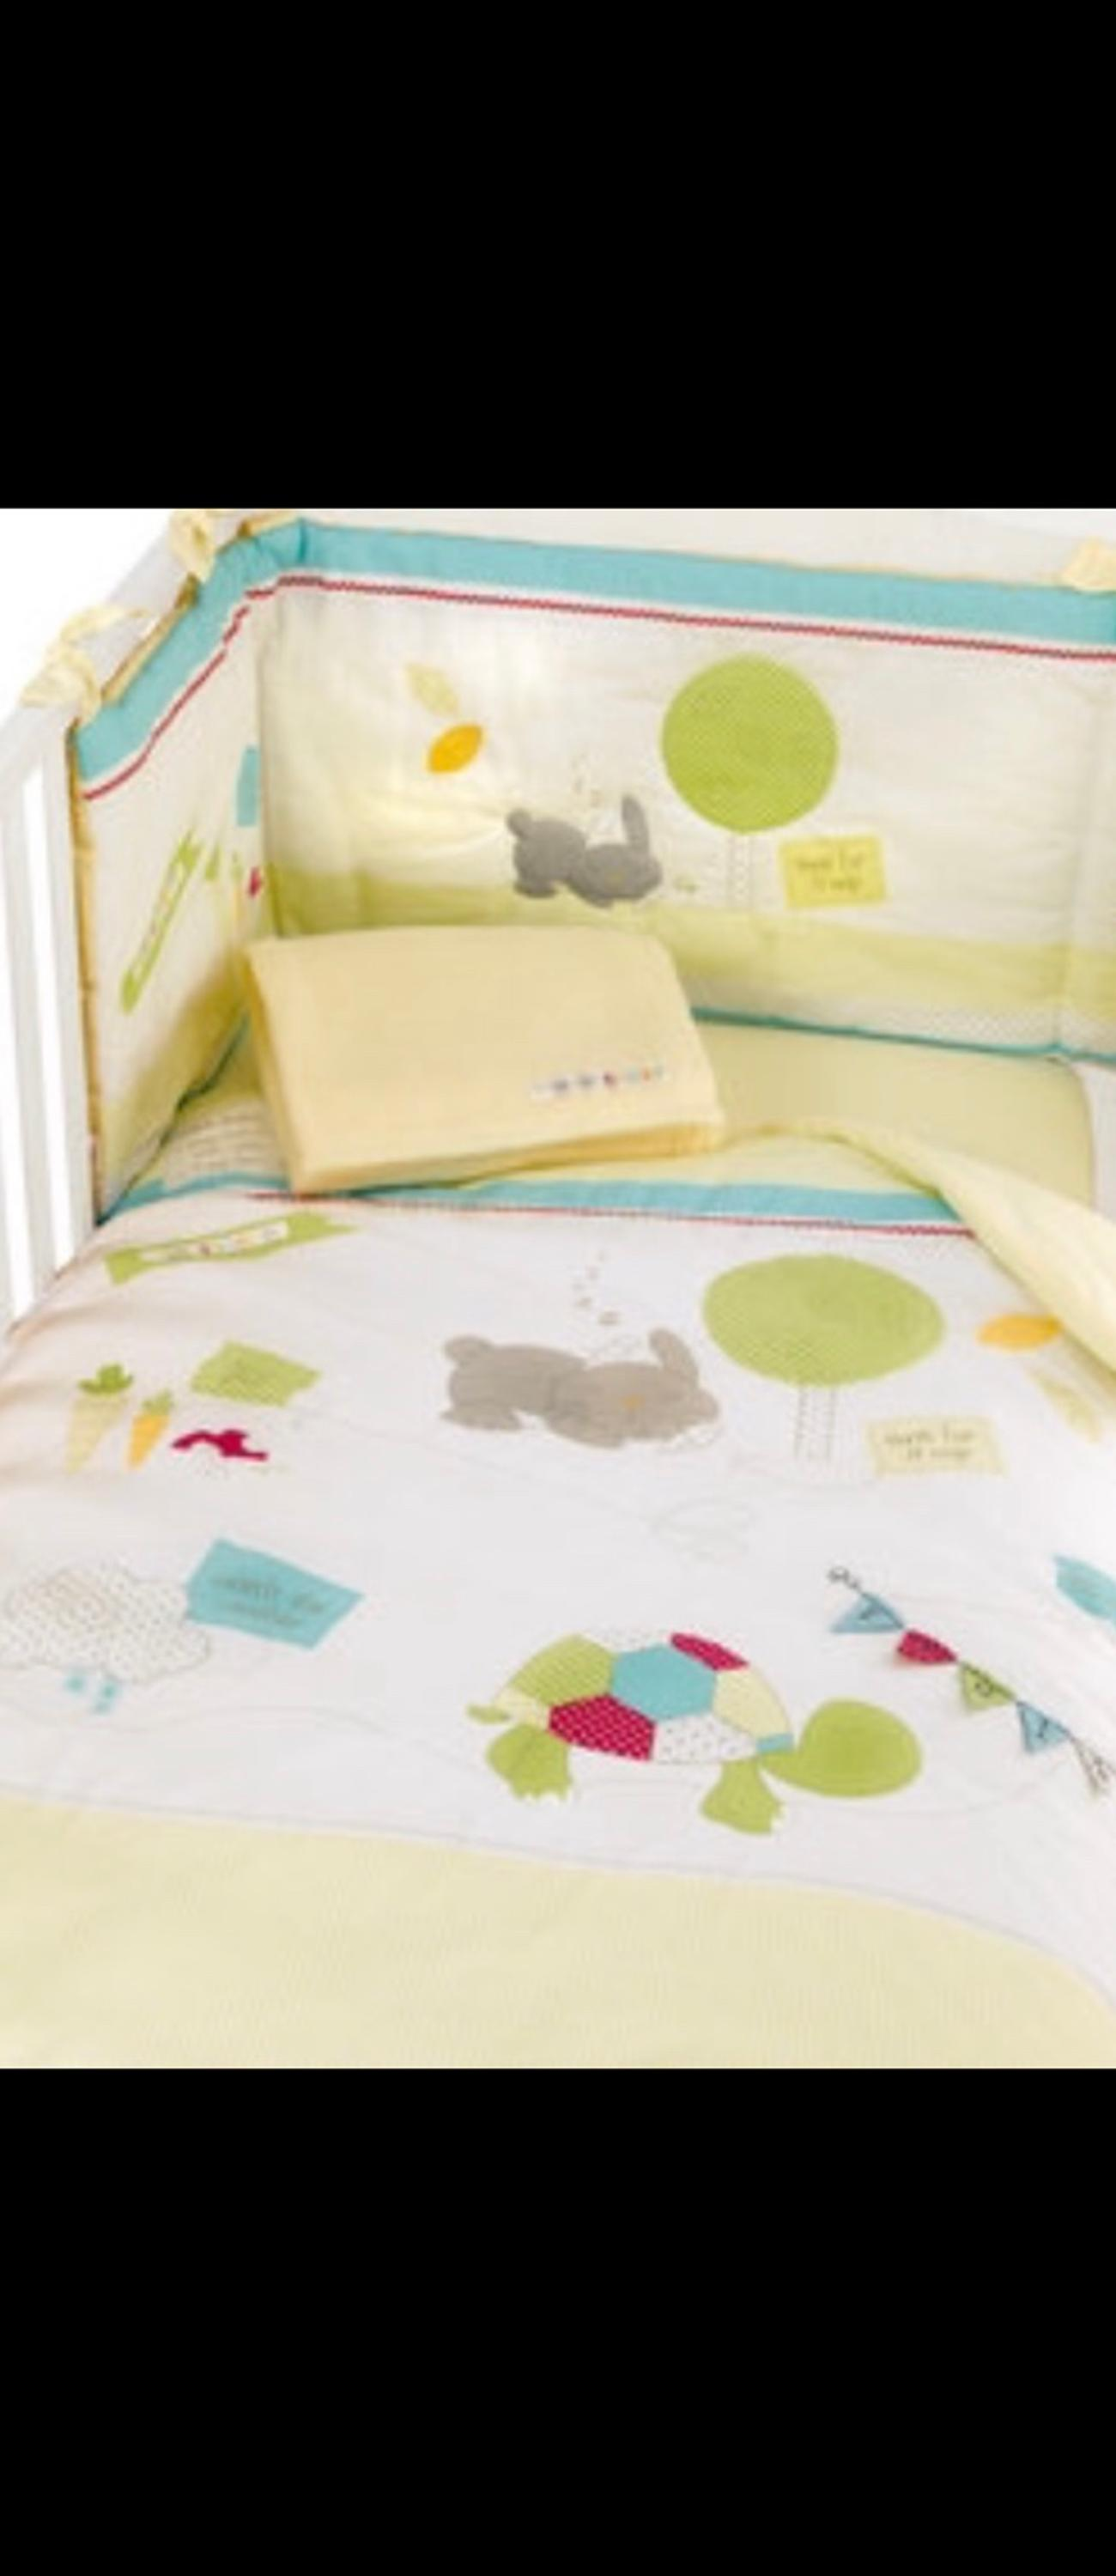 Nursery bedroom bedding set in Barnsley für 20,00 £ zum ...